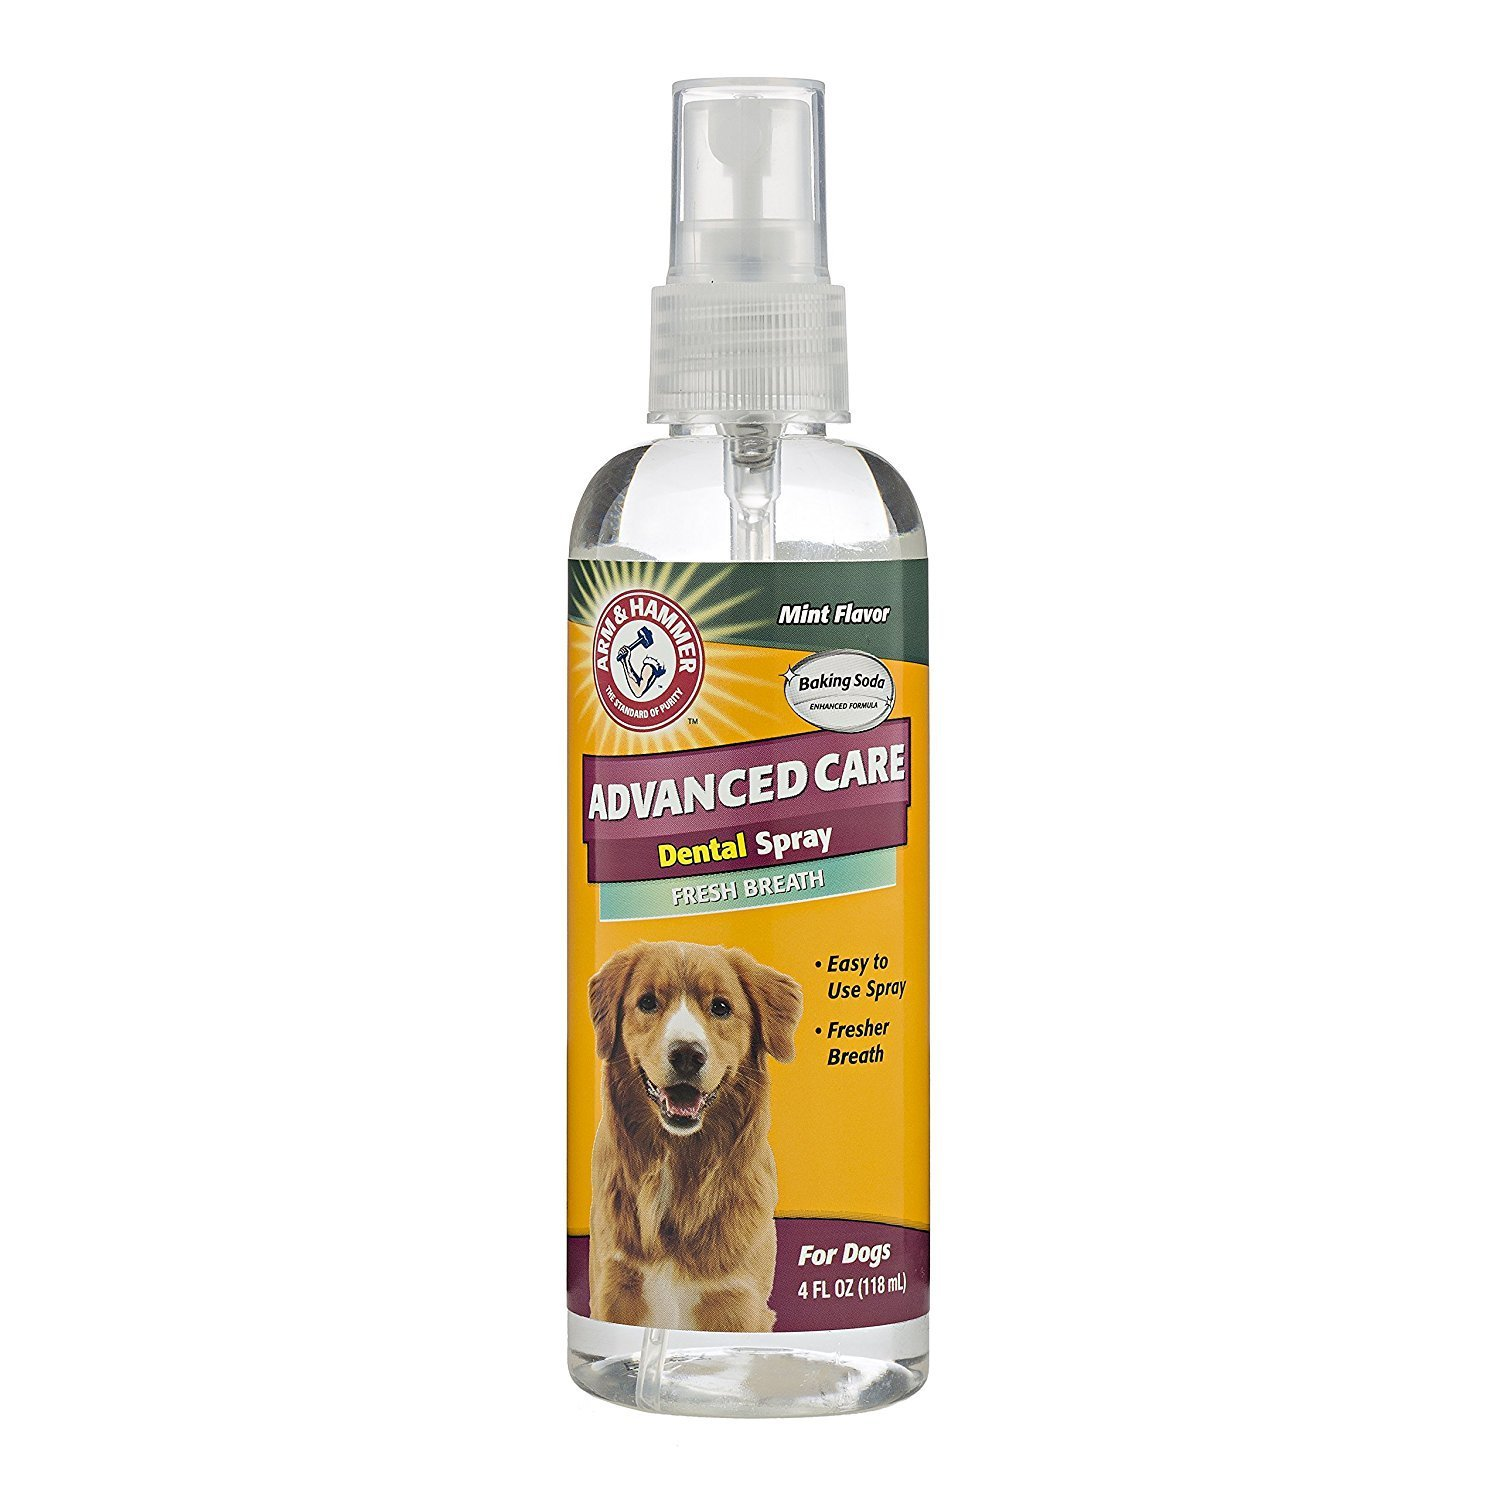 Advanced Care Tartar Control Dental Spray for Dogs, Mint Flavor